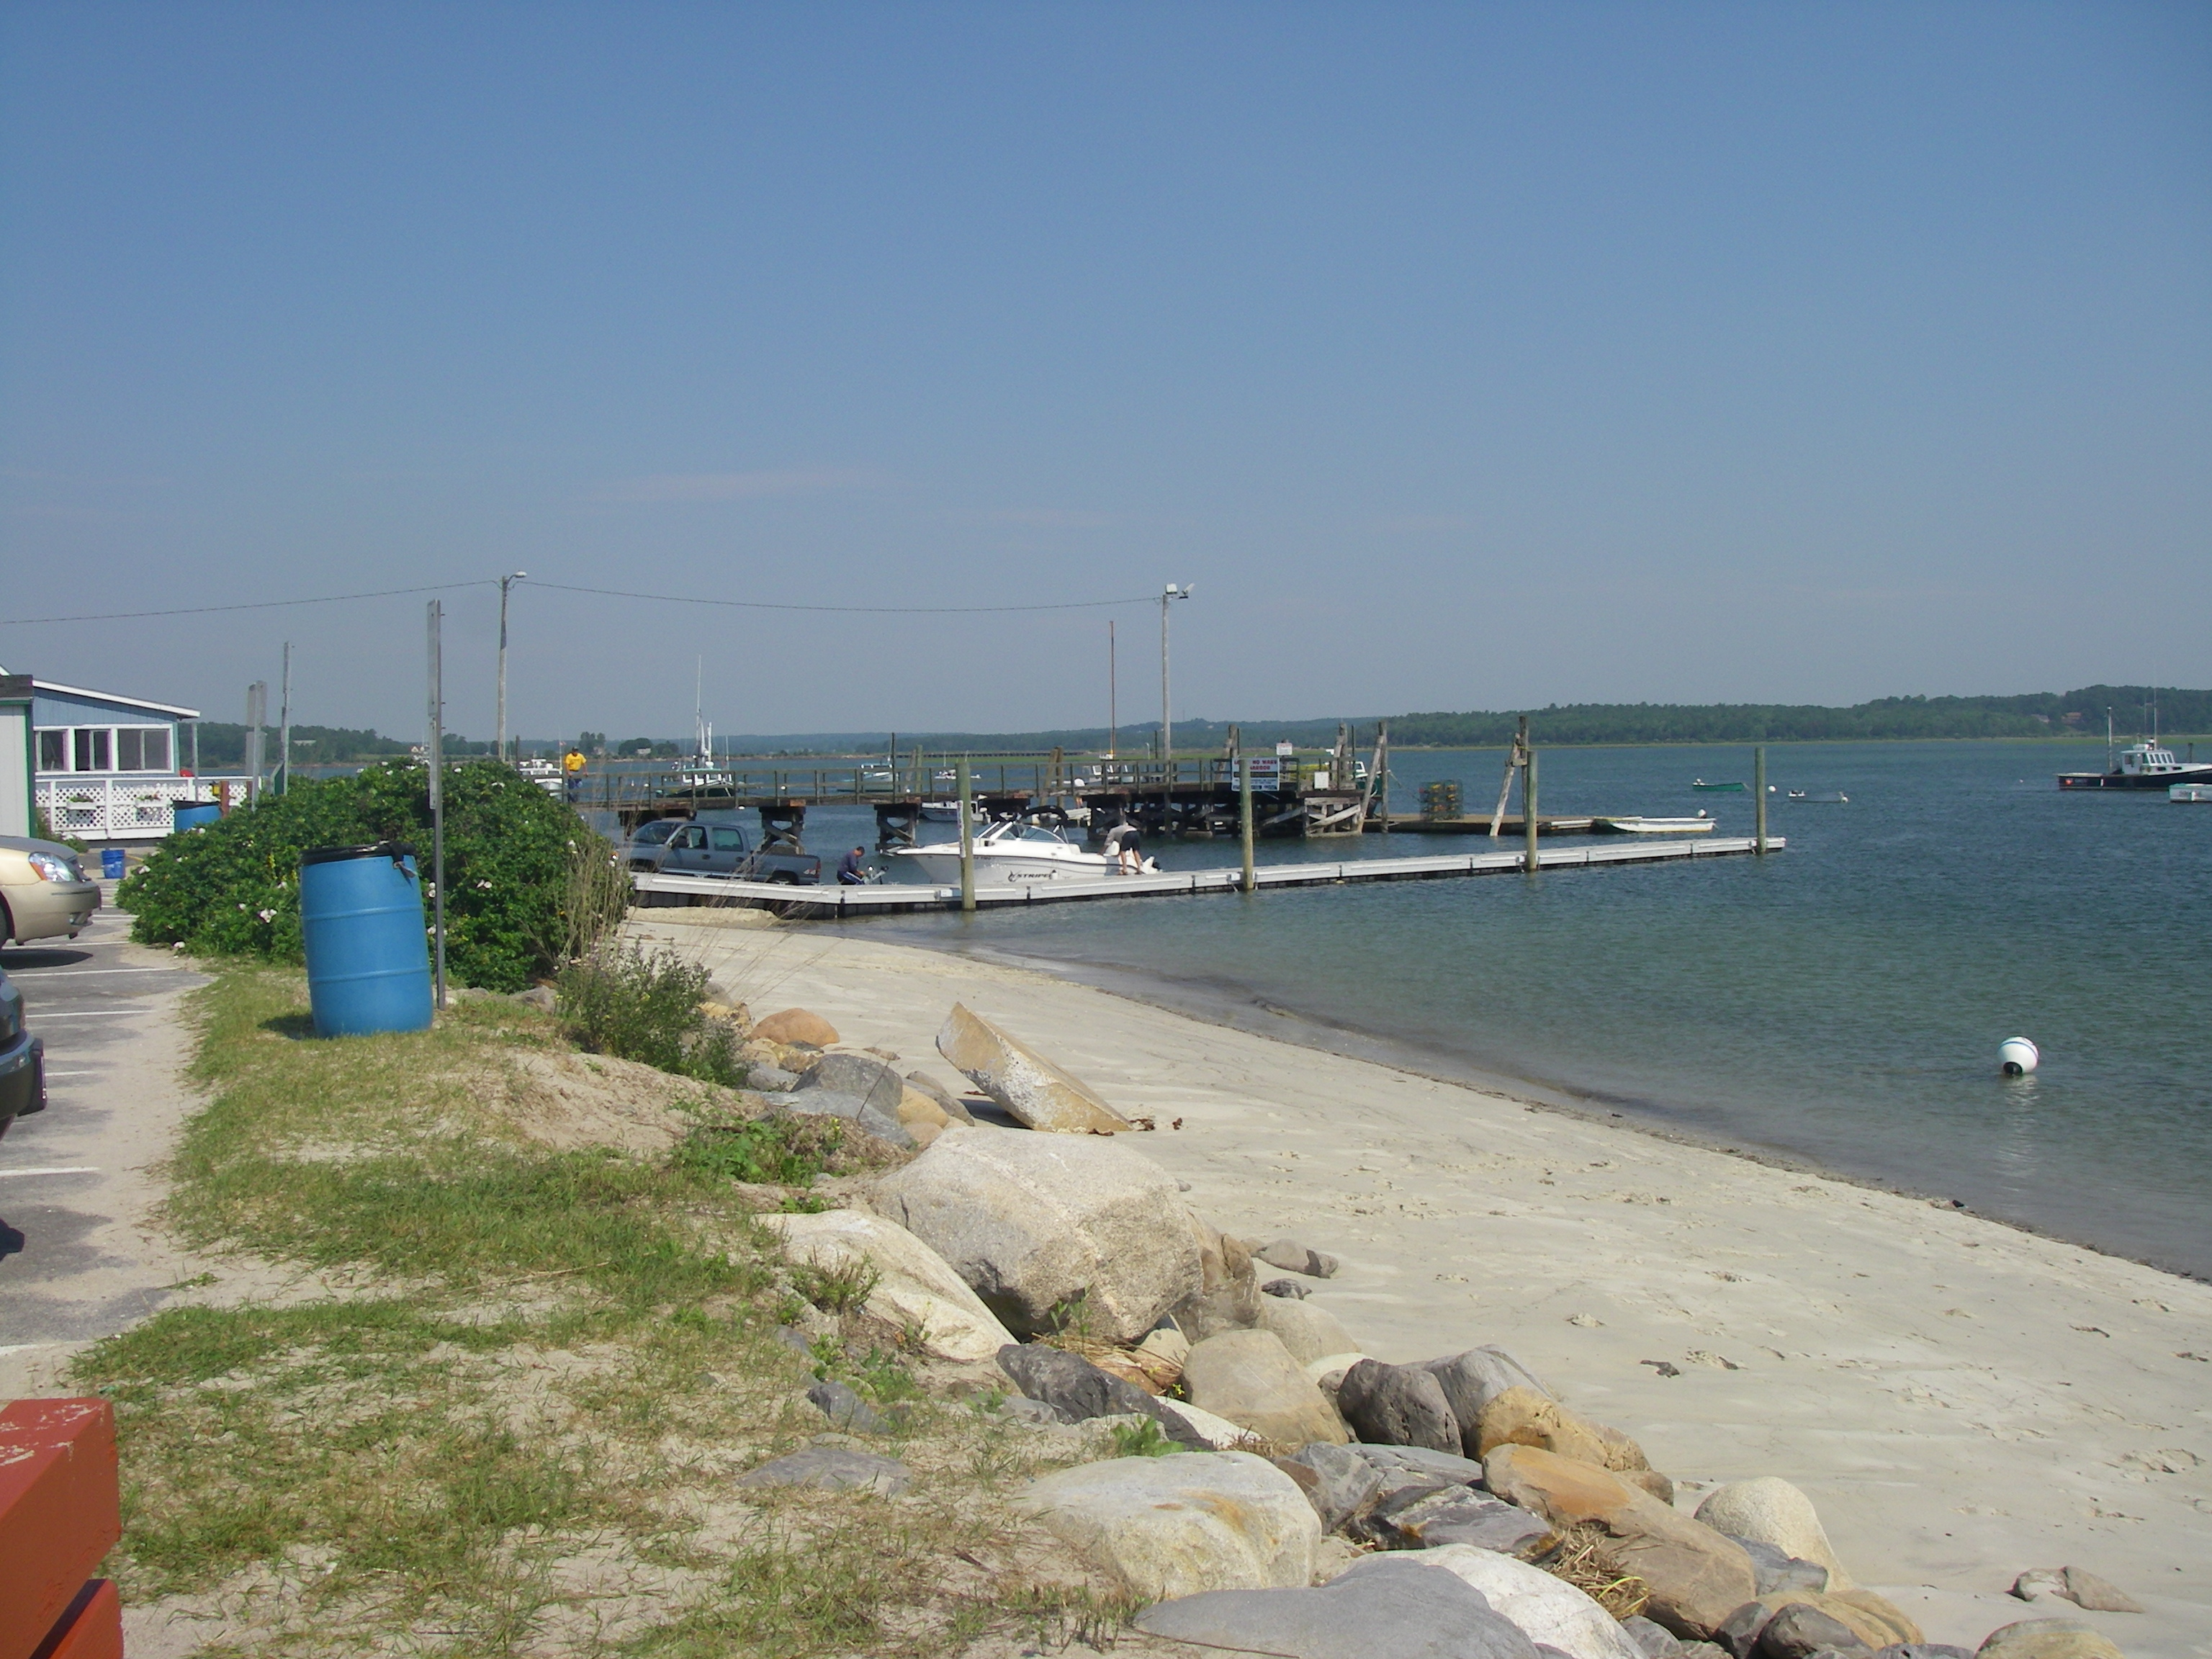 Click image for larger version  Name:maine 002.jpg Views:69 Size:2.33 MB ID:8762